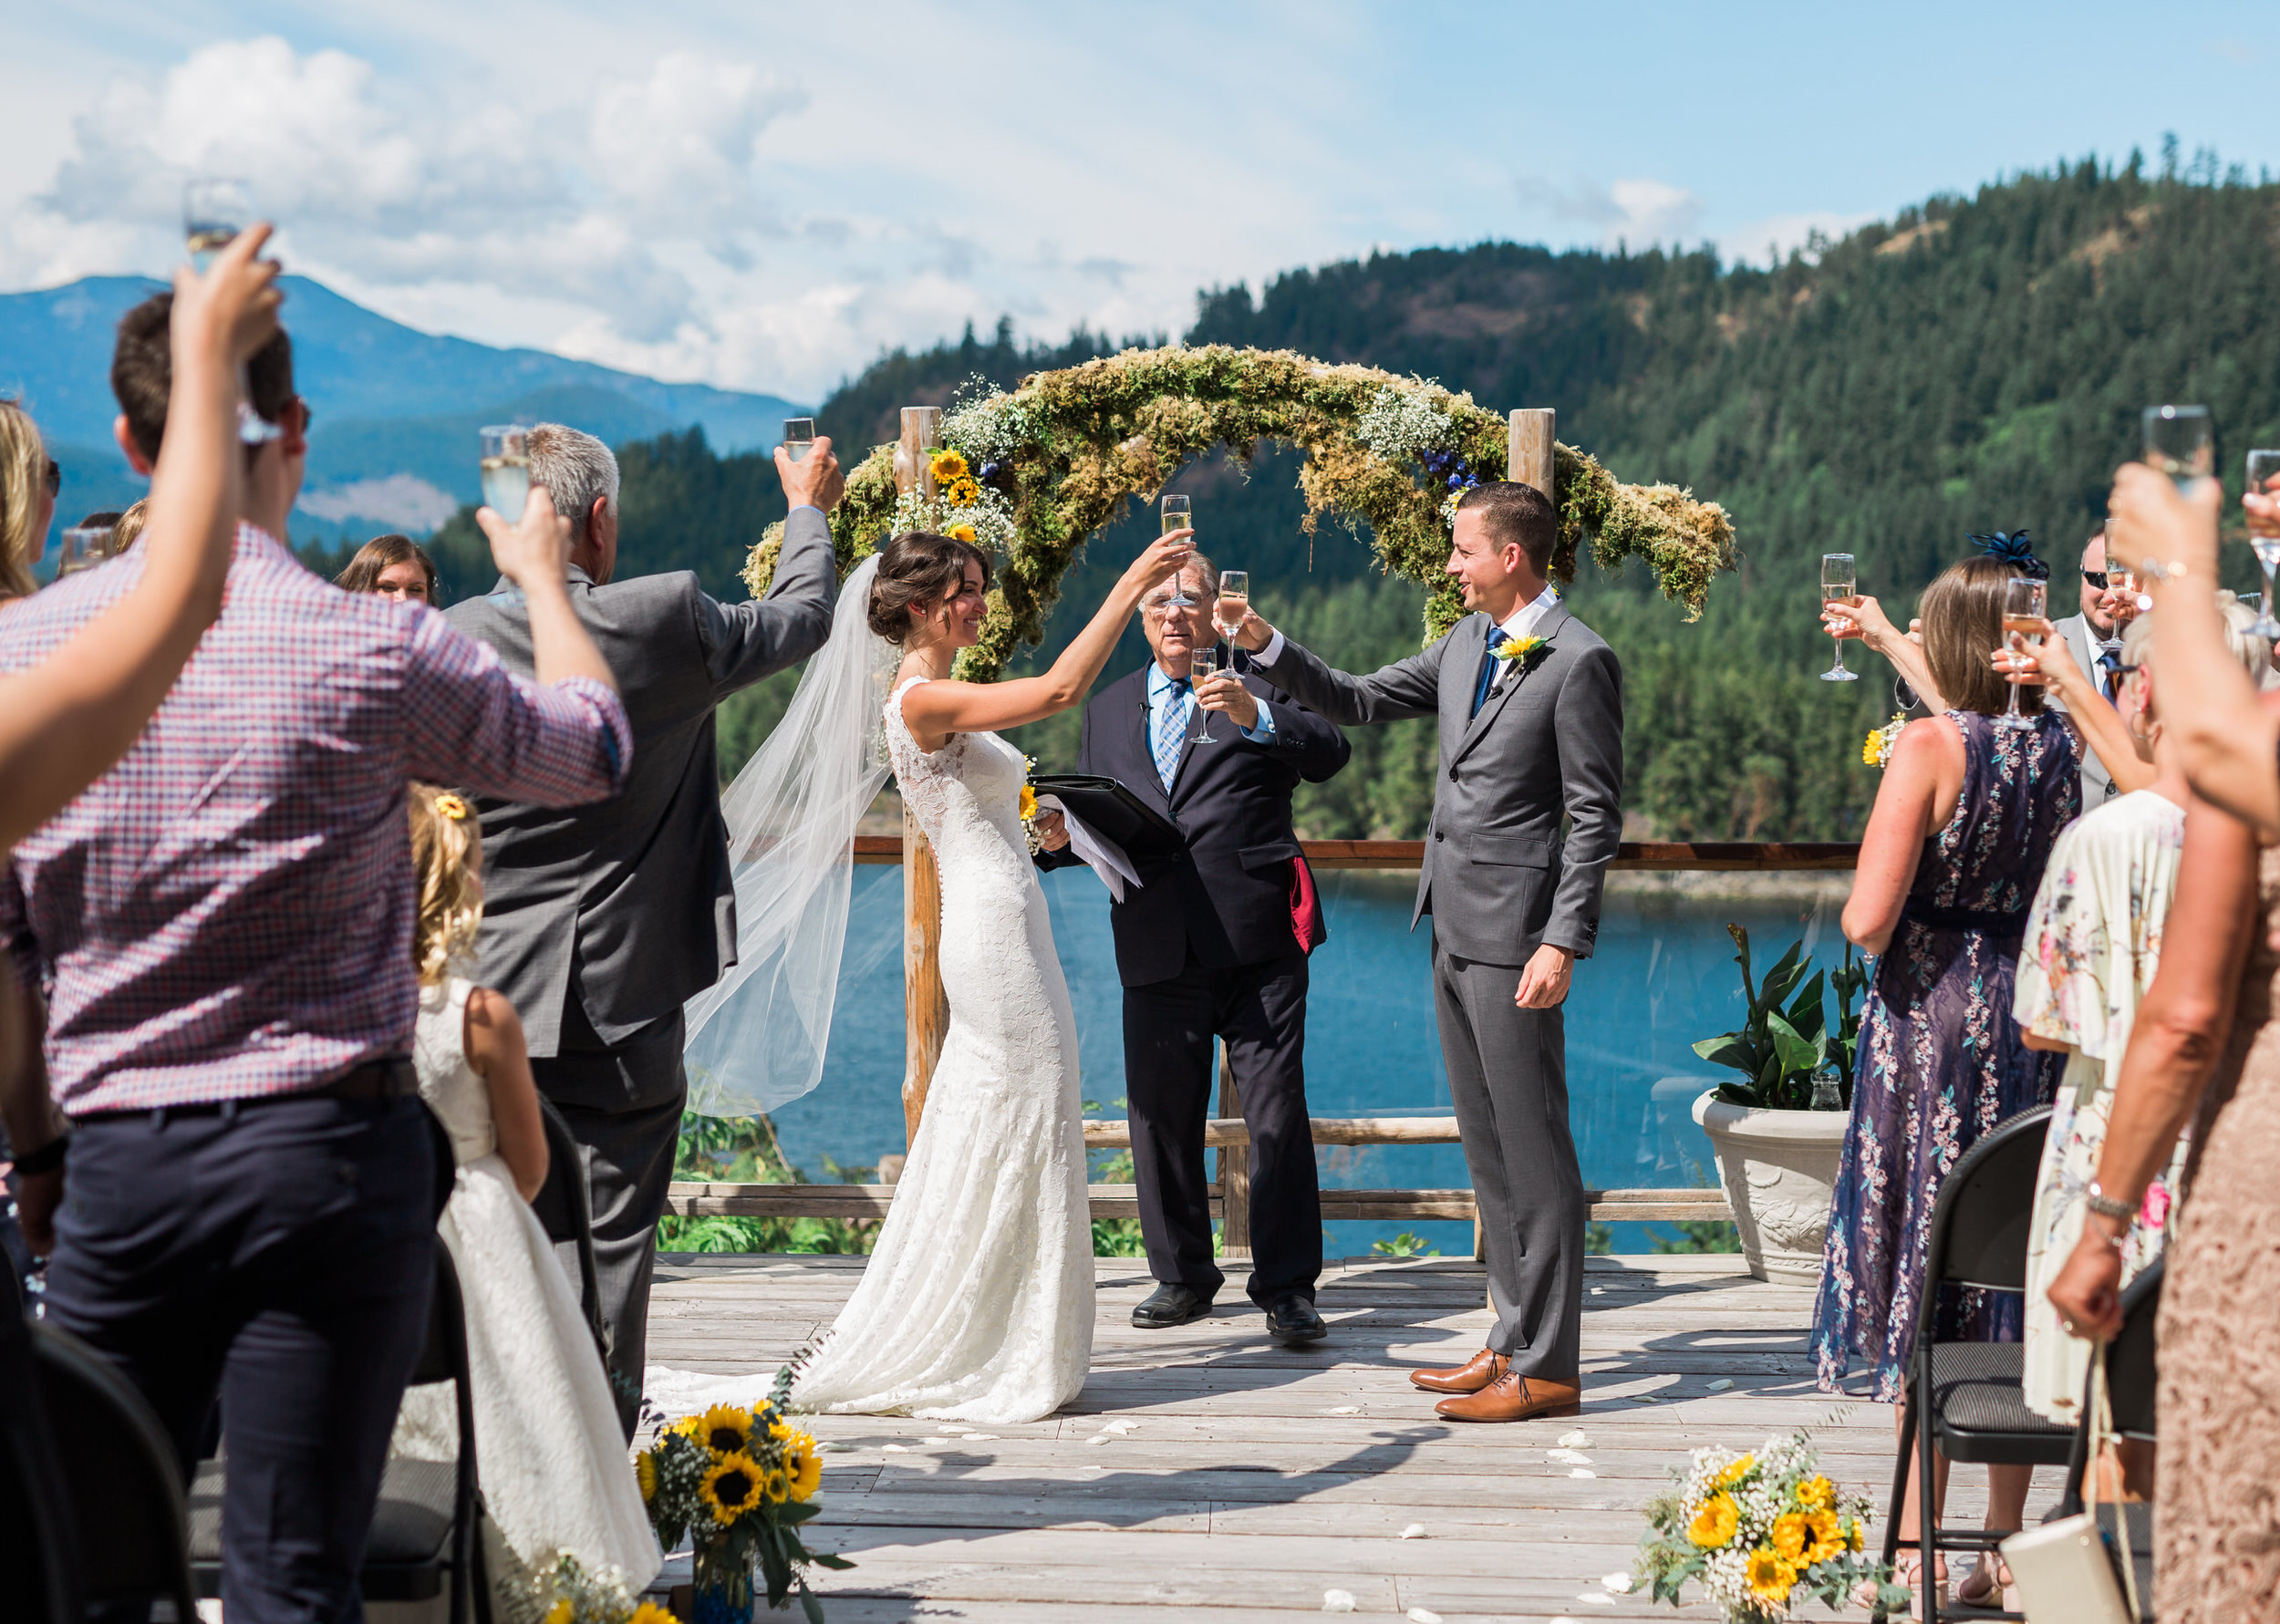 West Coast Wilderness Lodge Wedding Photos - Vancouver Wedding Photographer & Videographer - Sunshine Coast Wedding Photos - Sunshine Coast Wedding Photographer - Jennifer Picard Photography - IMG_8285.jpg